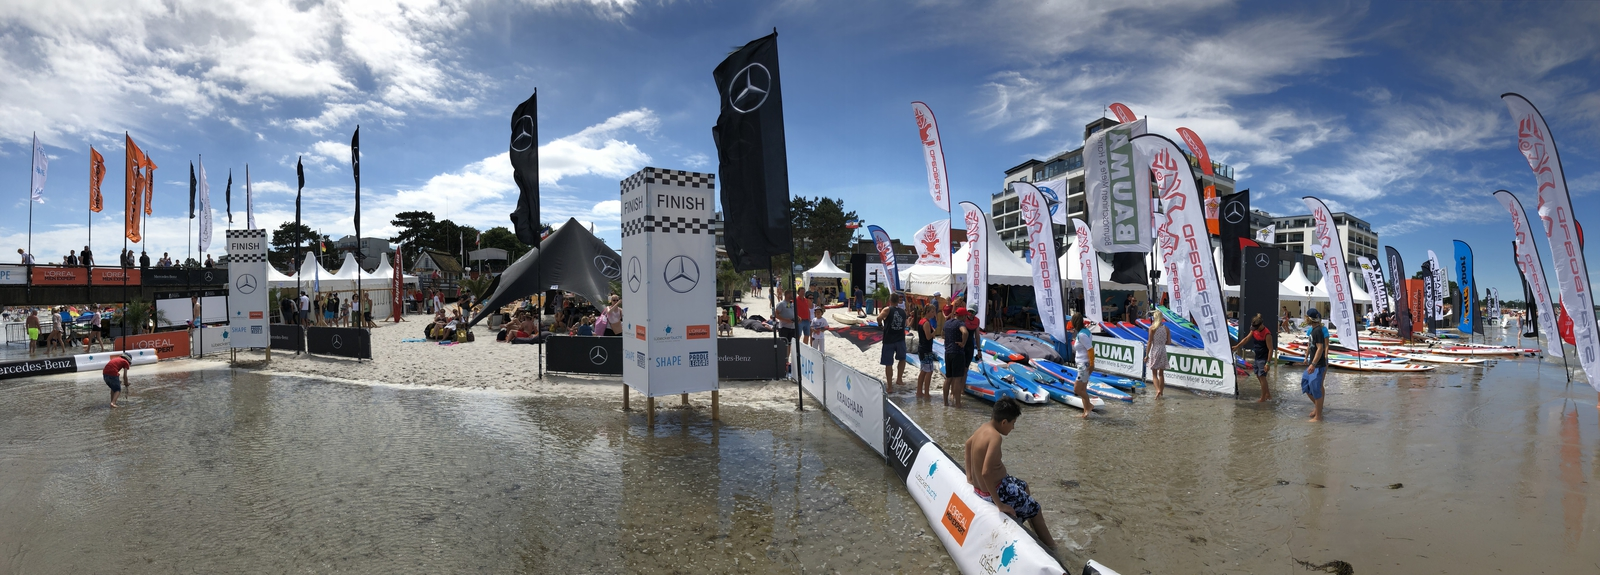 sup world cup scharbeutz 2018 - IMG_3477